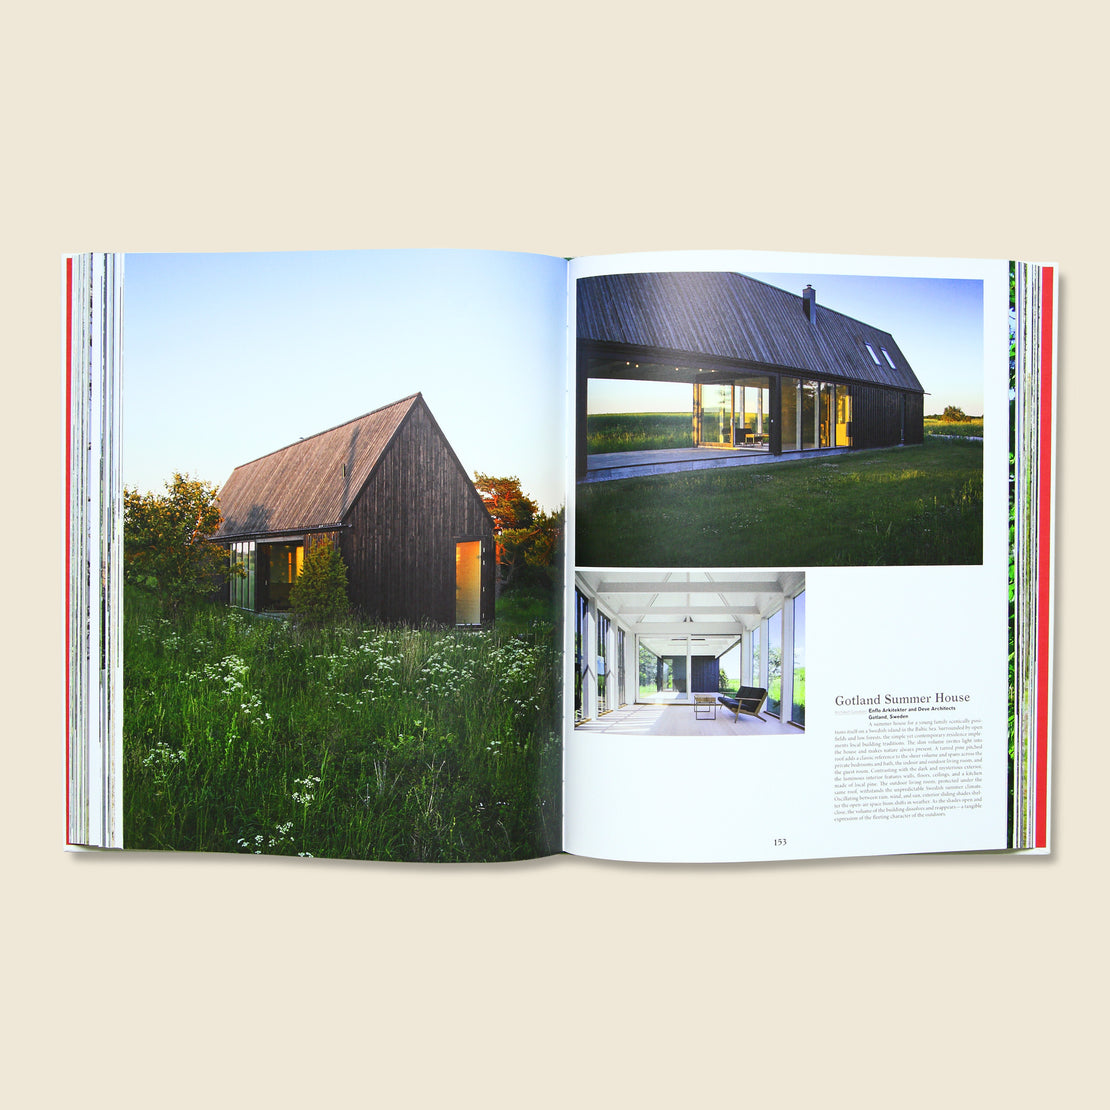 Hide and Seek: The Architecture of Cabins and Hideouts -  Sofia Borges - Bookstore - STAG Provisions - Gift - Books